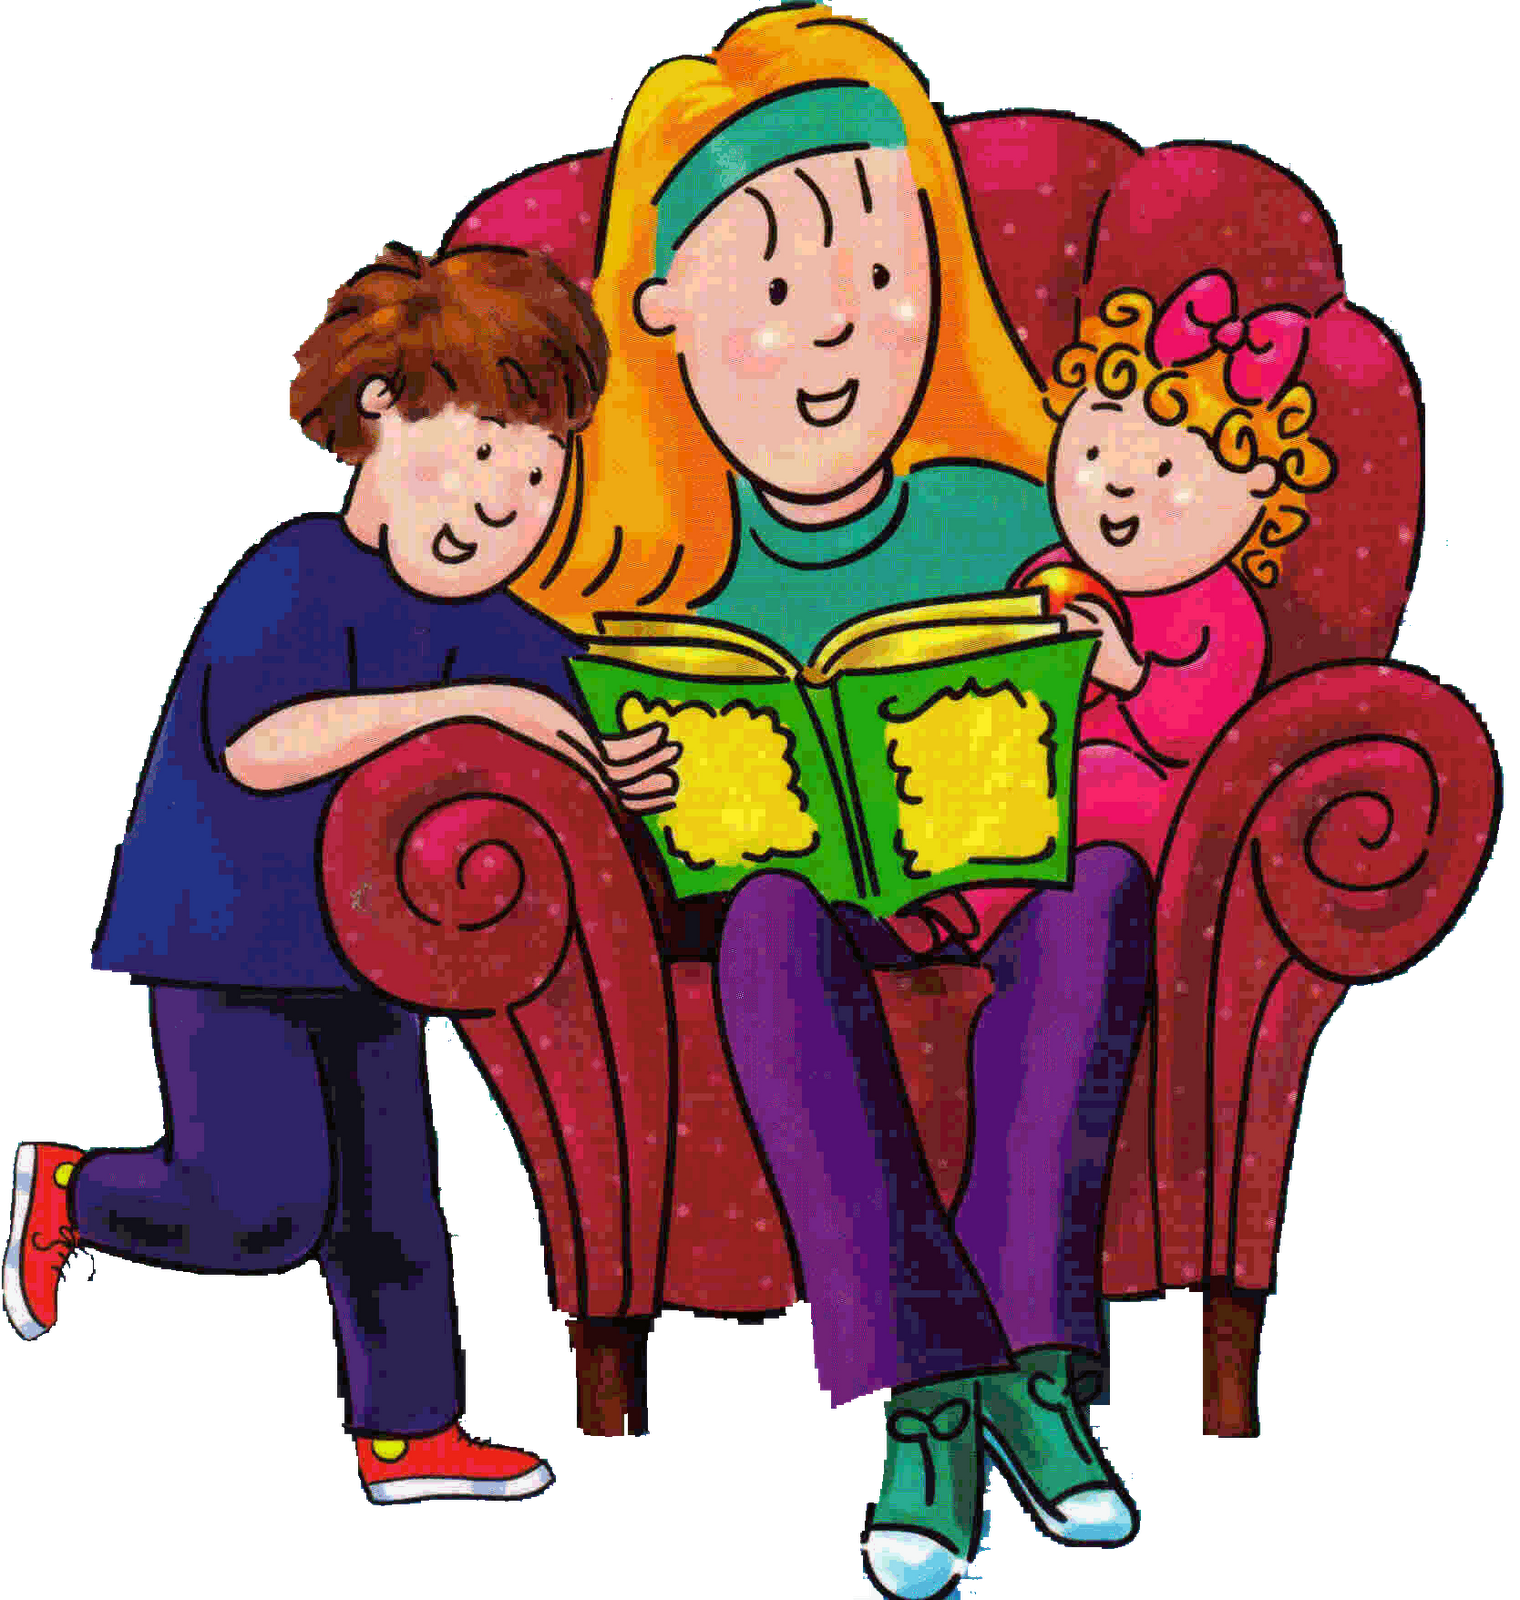 Crayons and checkbooks finding. Pajamas clipart storytime